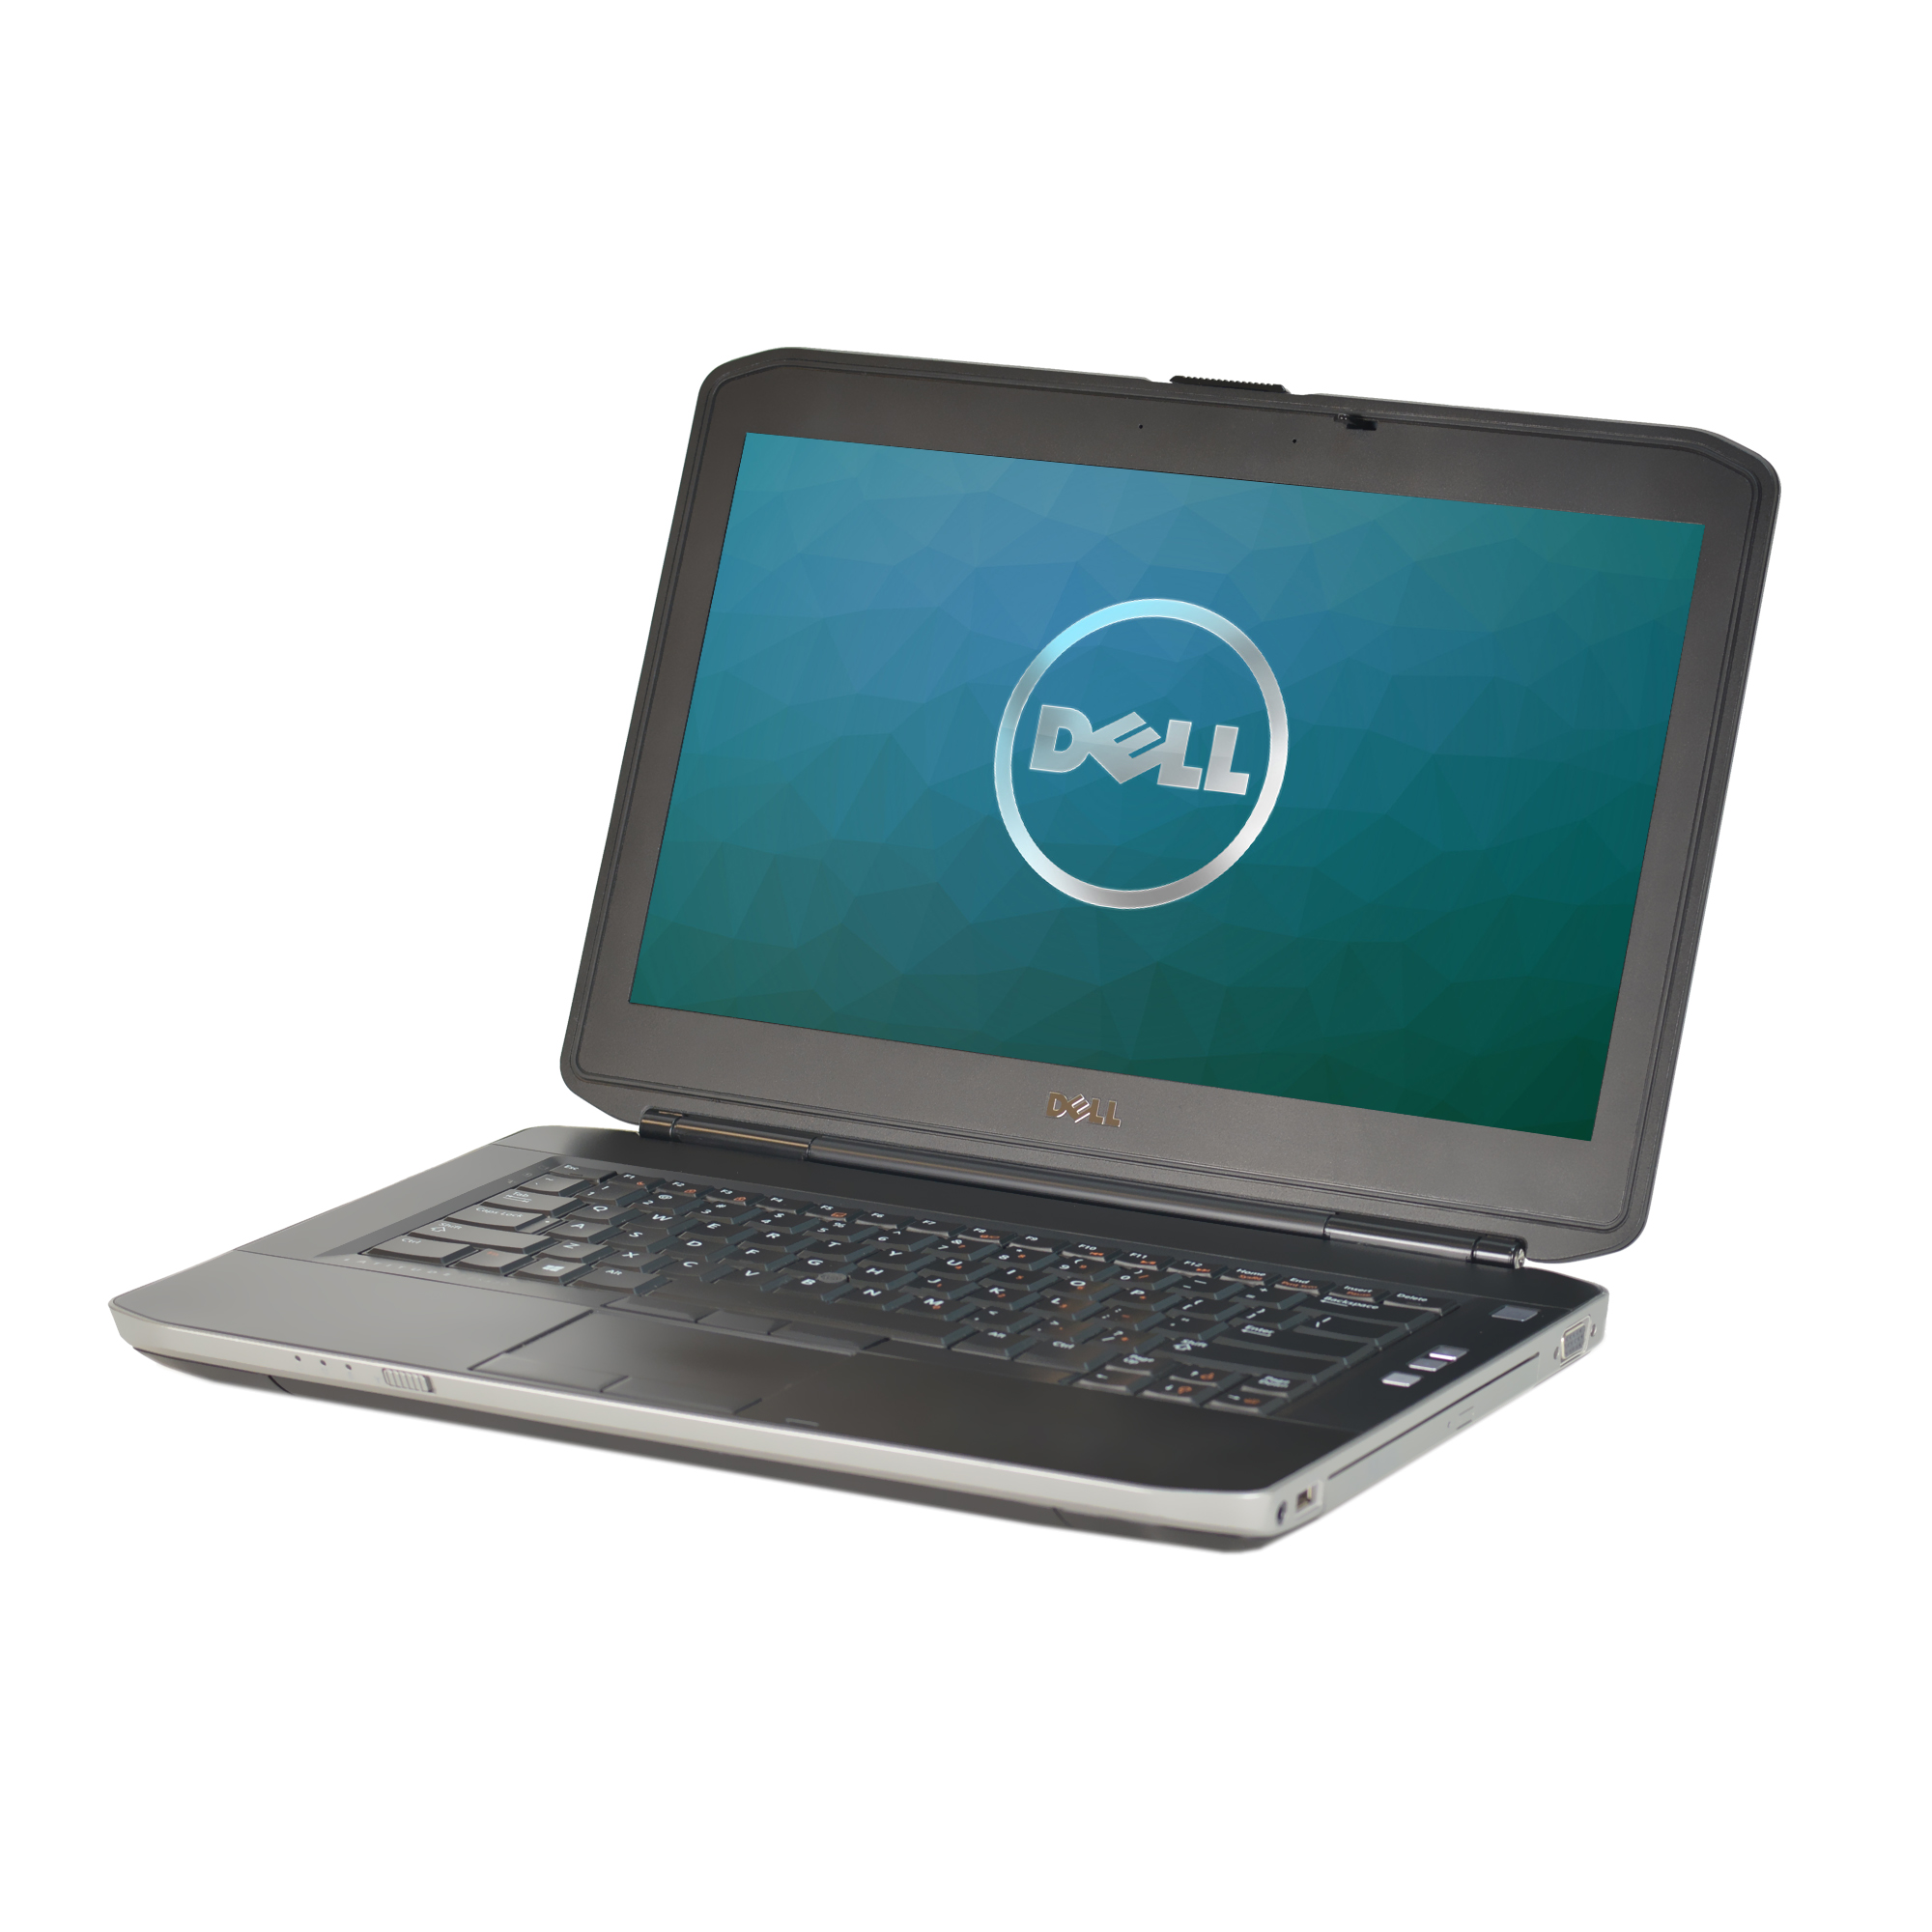 dell 14 latitude e5430 laptop intel core i5 4gb ram 250gb hdd grade b tanga. Black Bedroom Furniture Sets. Home Design Ideas